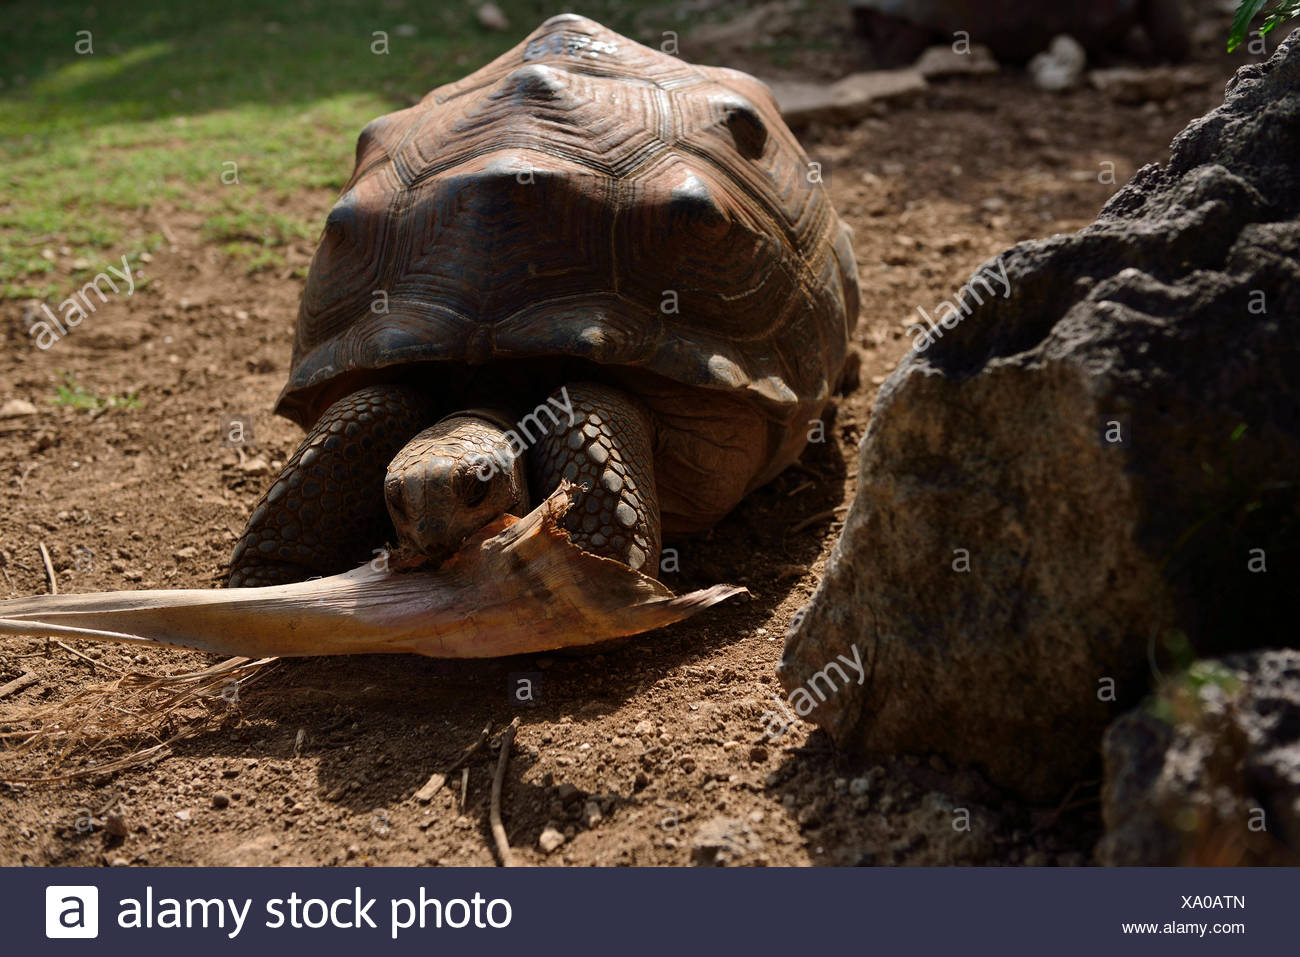 Giant tortoise, Francois Leguat Giant Tortoise and Cave Parc, Anse Quitor, Rodrigues - Stock Image